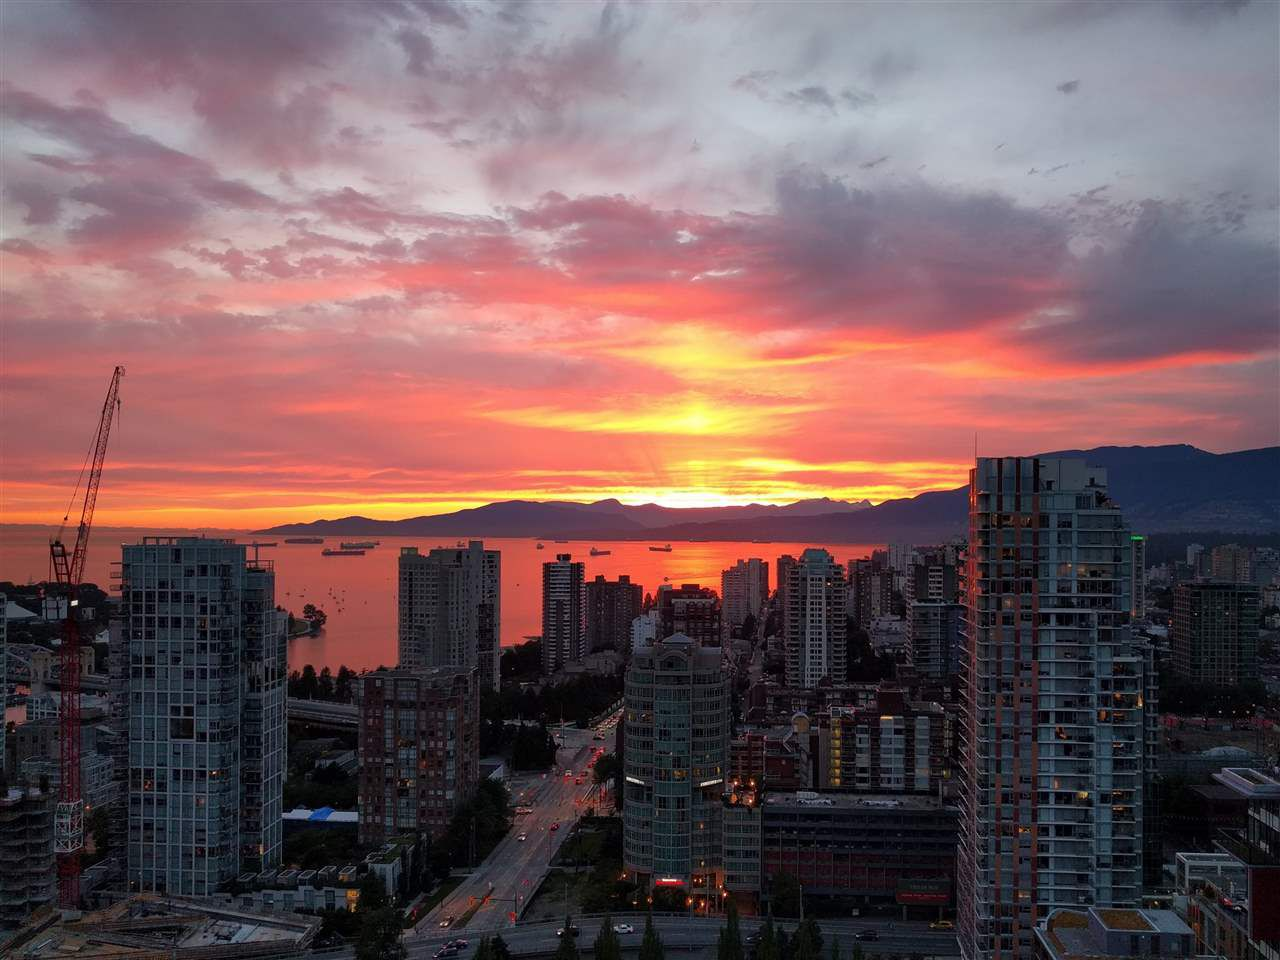 Main Photo: 3802 1372 SEYMOUR STREET in Vancouver: Downtown VW Condo for sale (Vancouver West)  : MLS®# R2189623